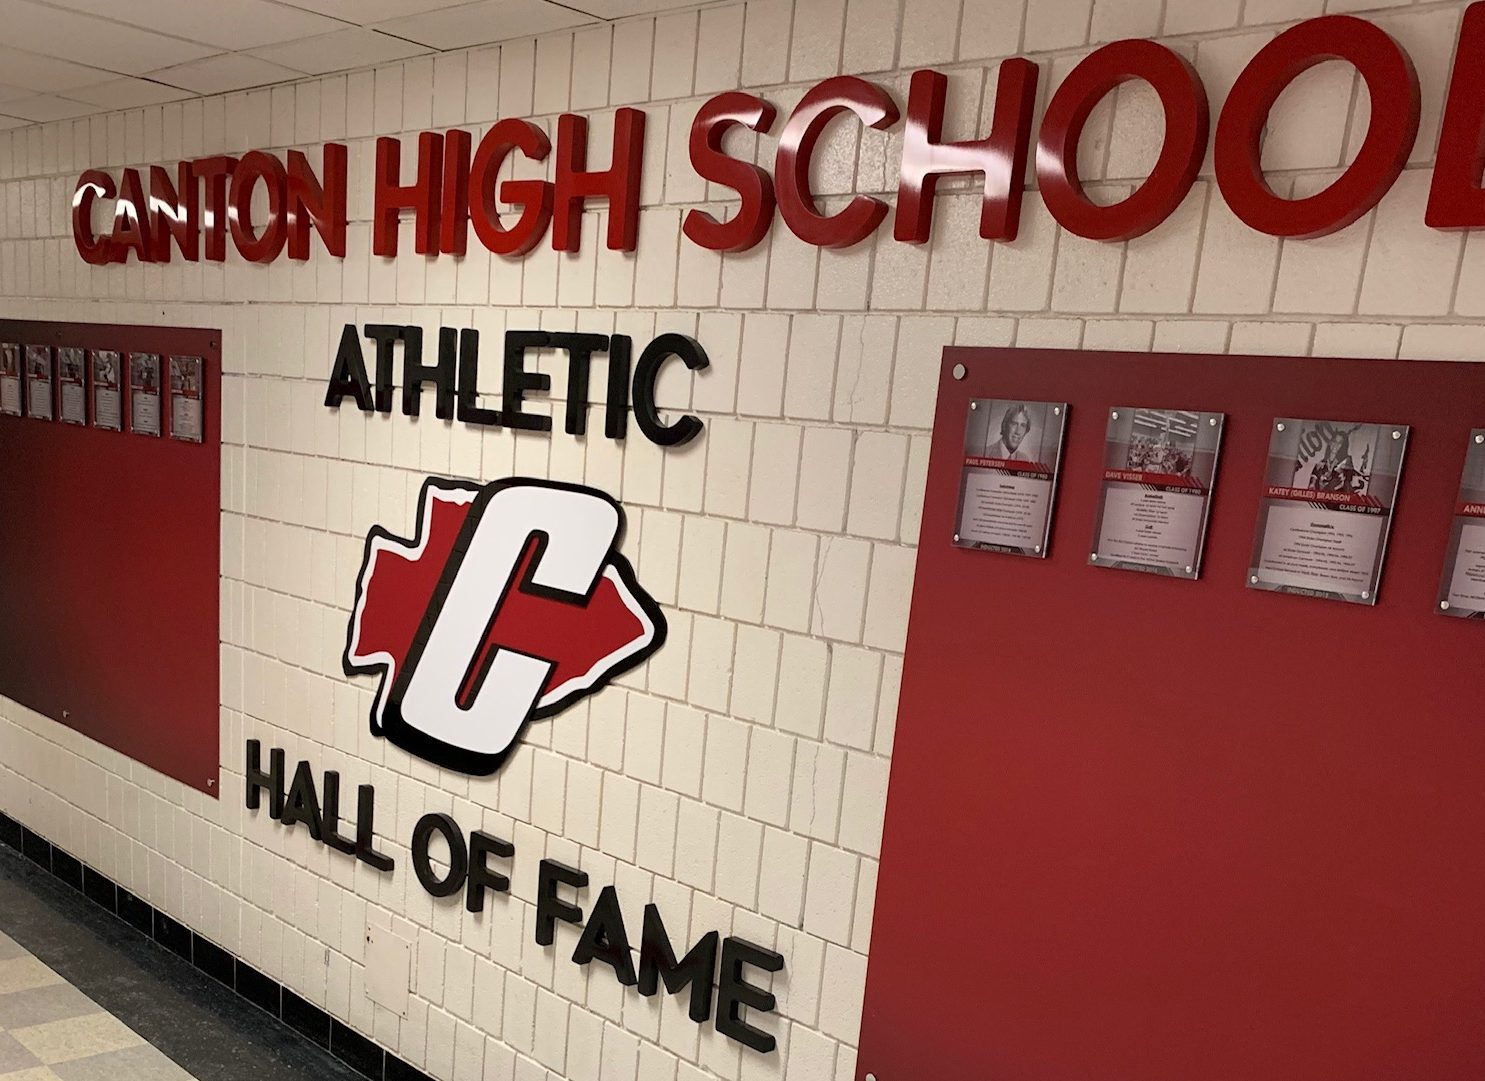 Canton High School 2019 Athletic Hall of Fame Weekend – Feb 15th and 16th